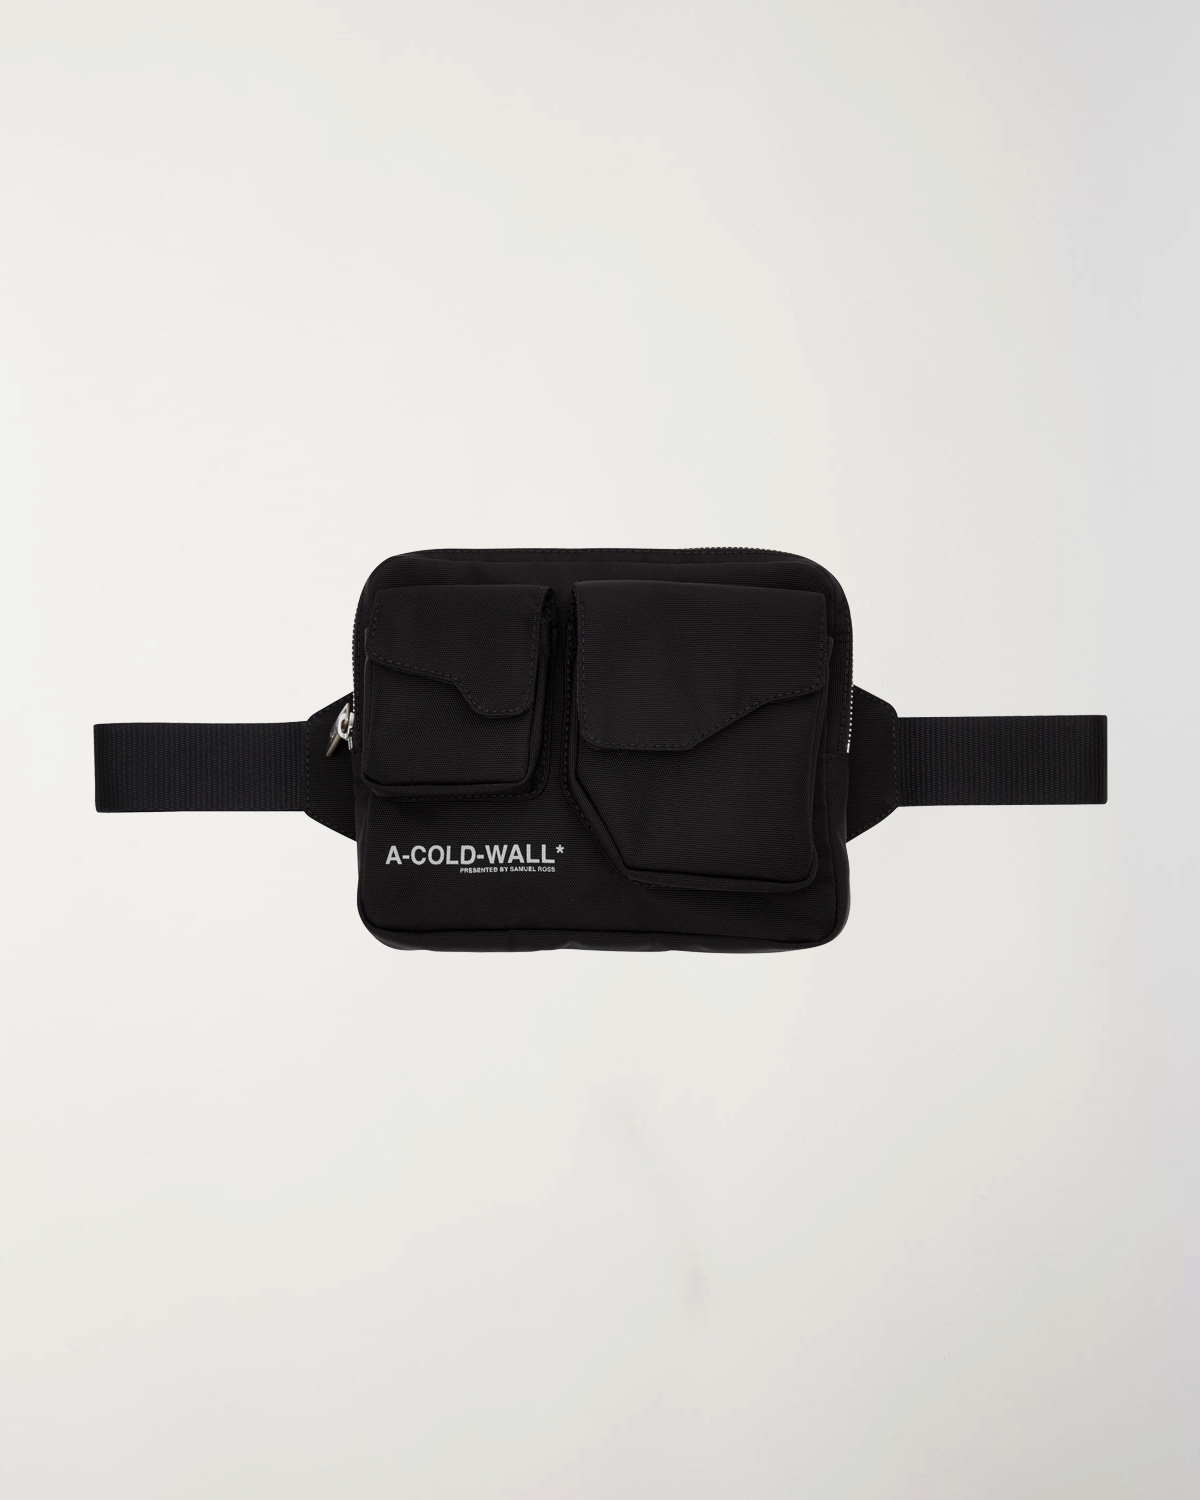 A-Cold-Wall* Abdoman bag